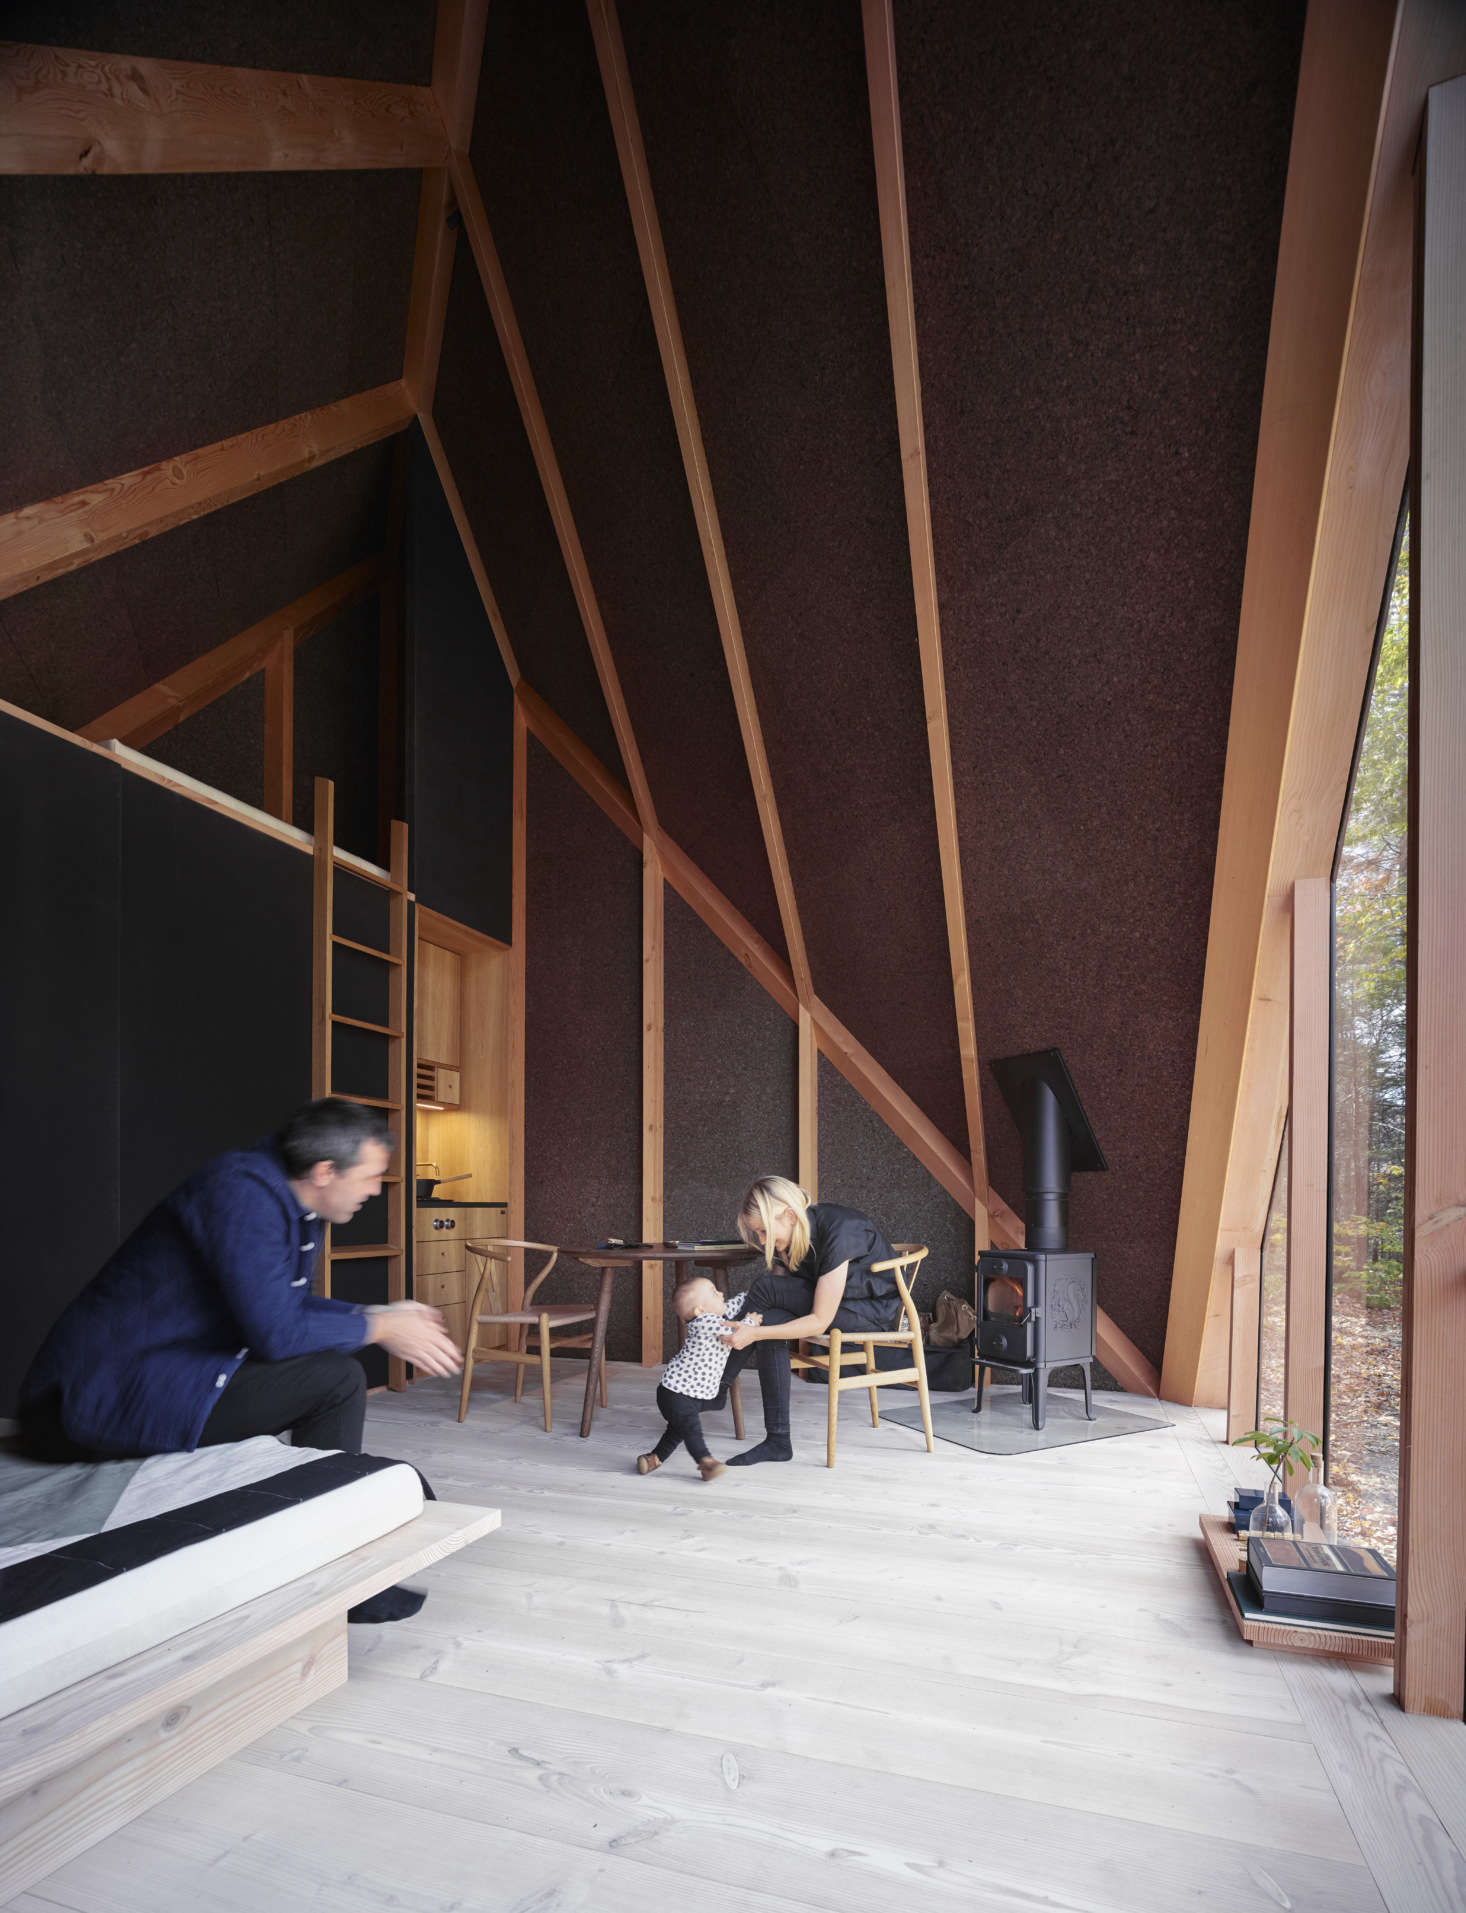 The New Nordic A-Frame: A Flat-Pack Tiny House by BIG